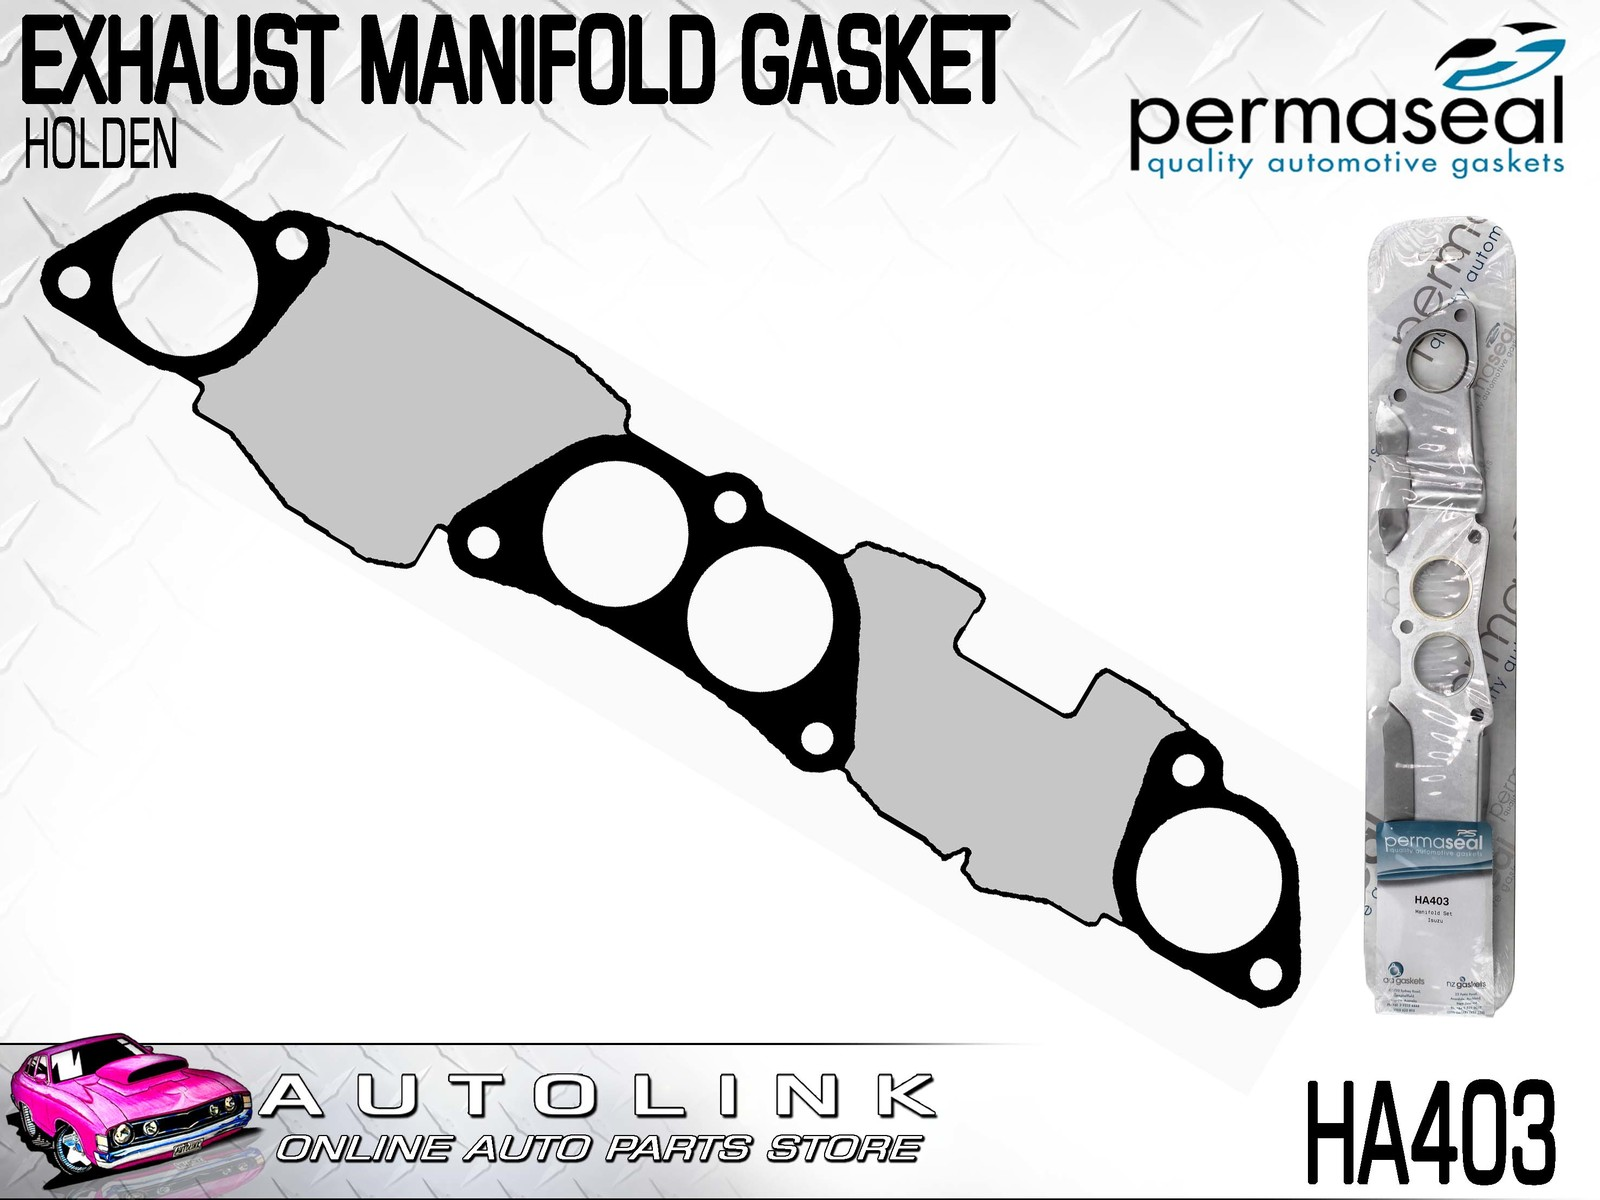 Permaseal Exhaust Manifold Gasket Suit Holden Shuttle Wfr